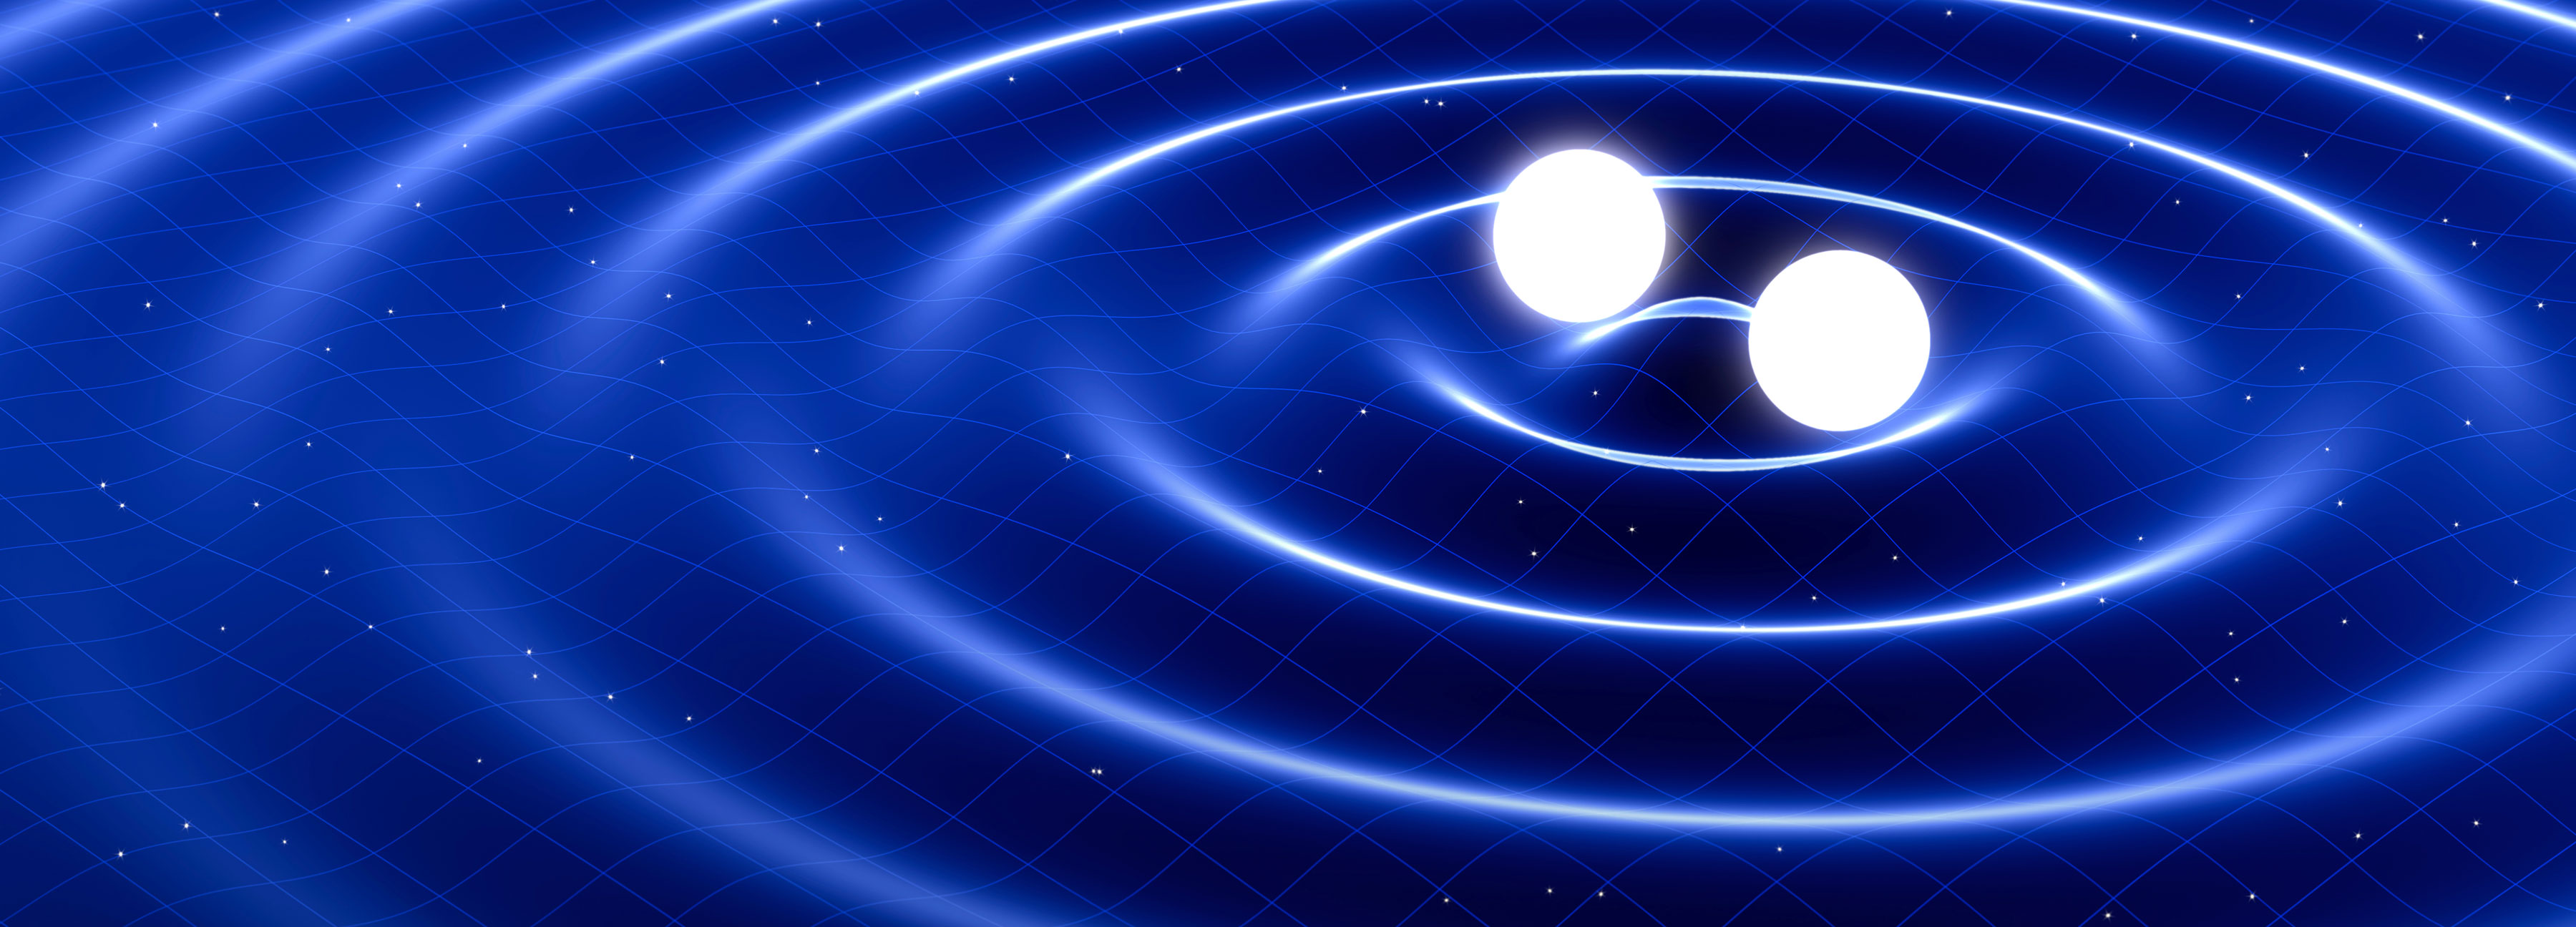 Image of gravitational waves